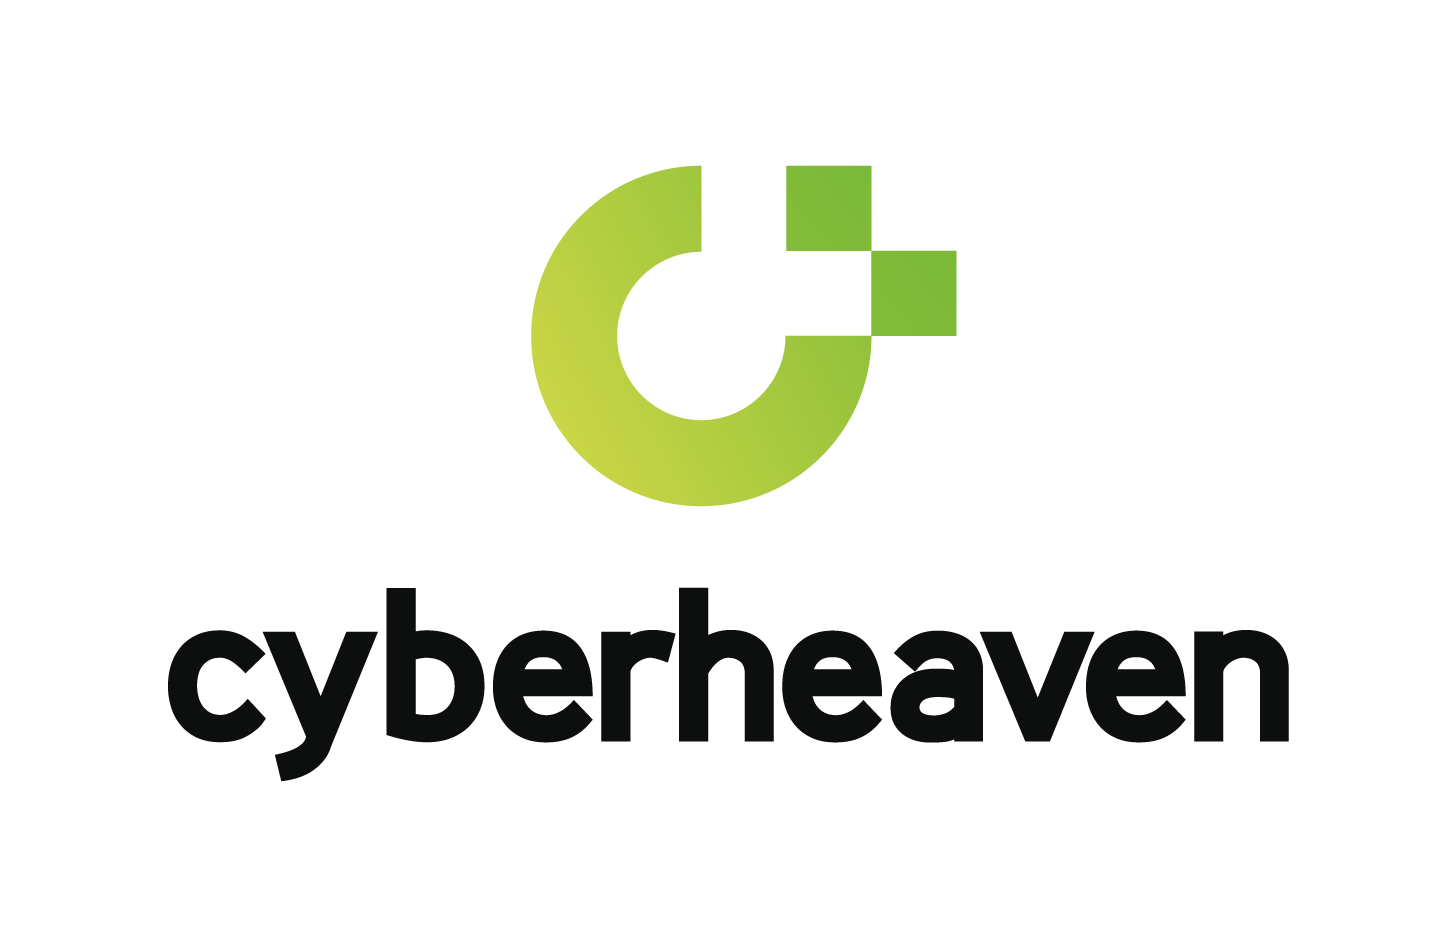 CyberHeaven's Progress & Product Launch During a Pandemic